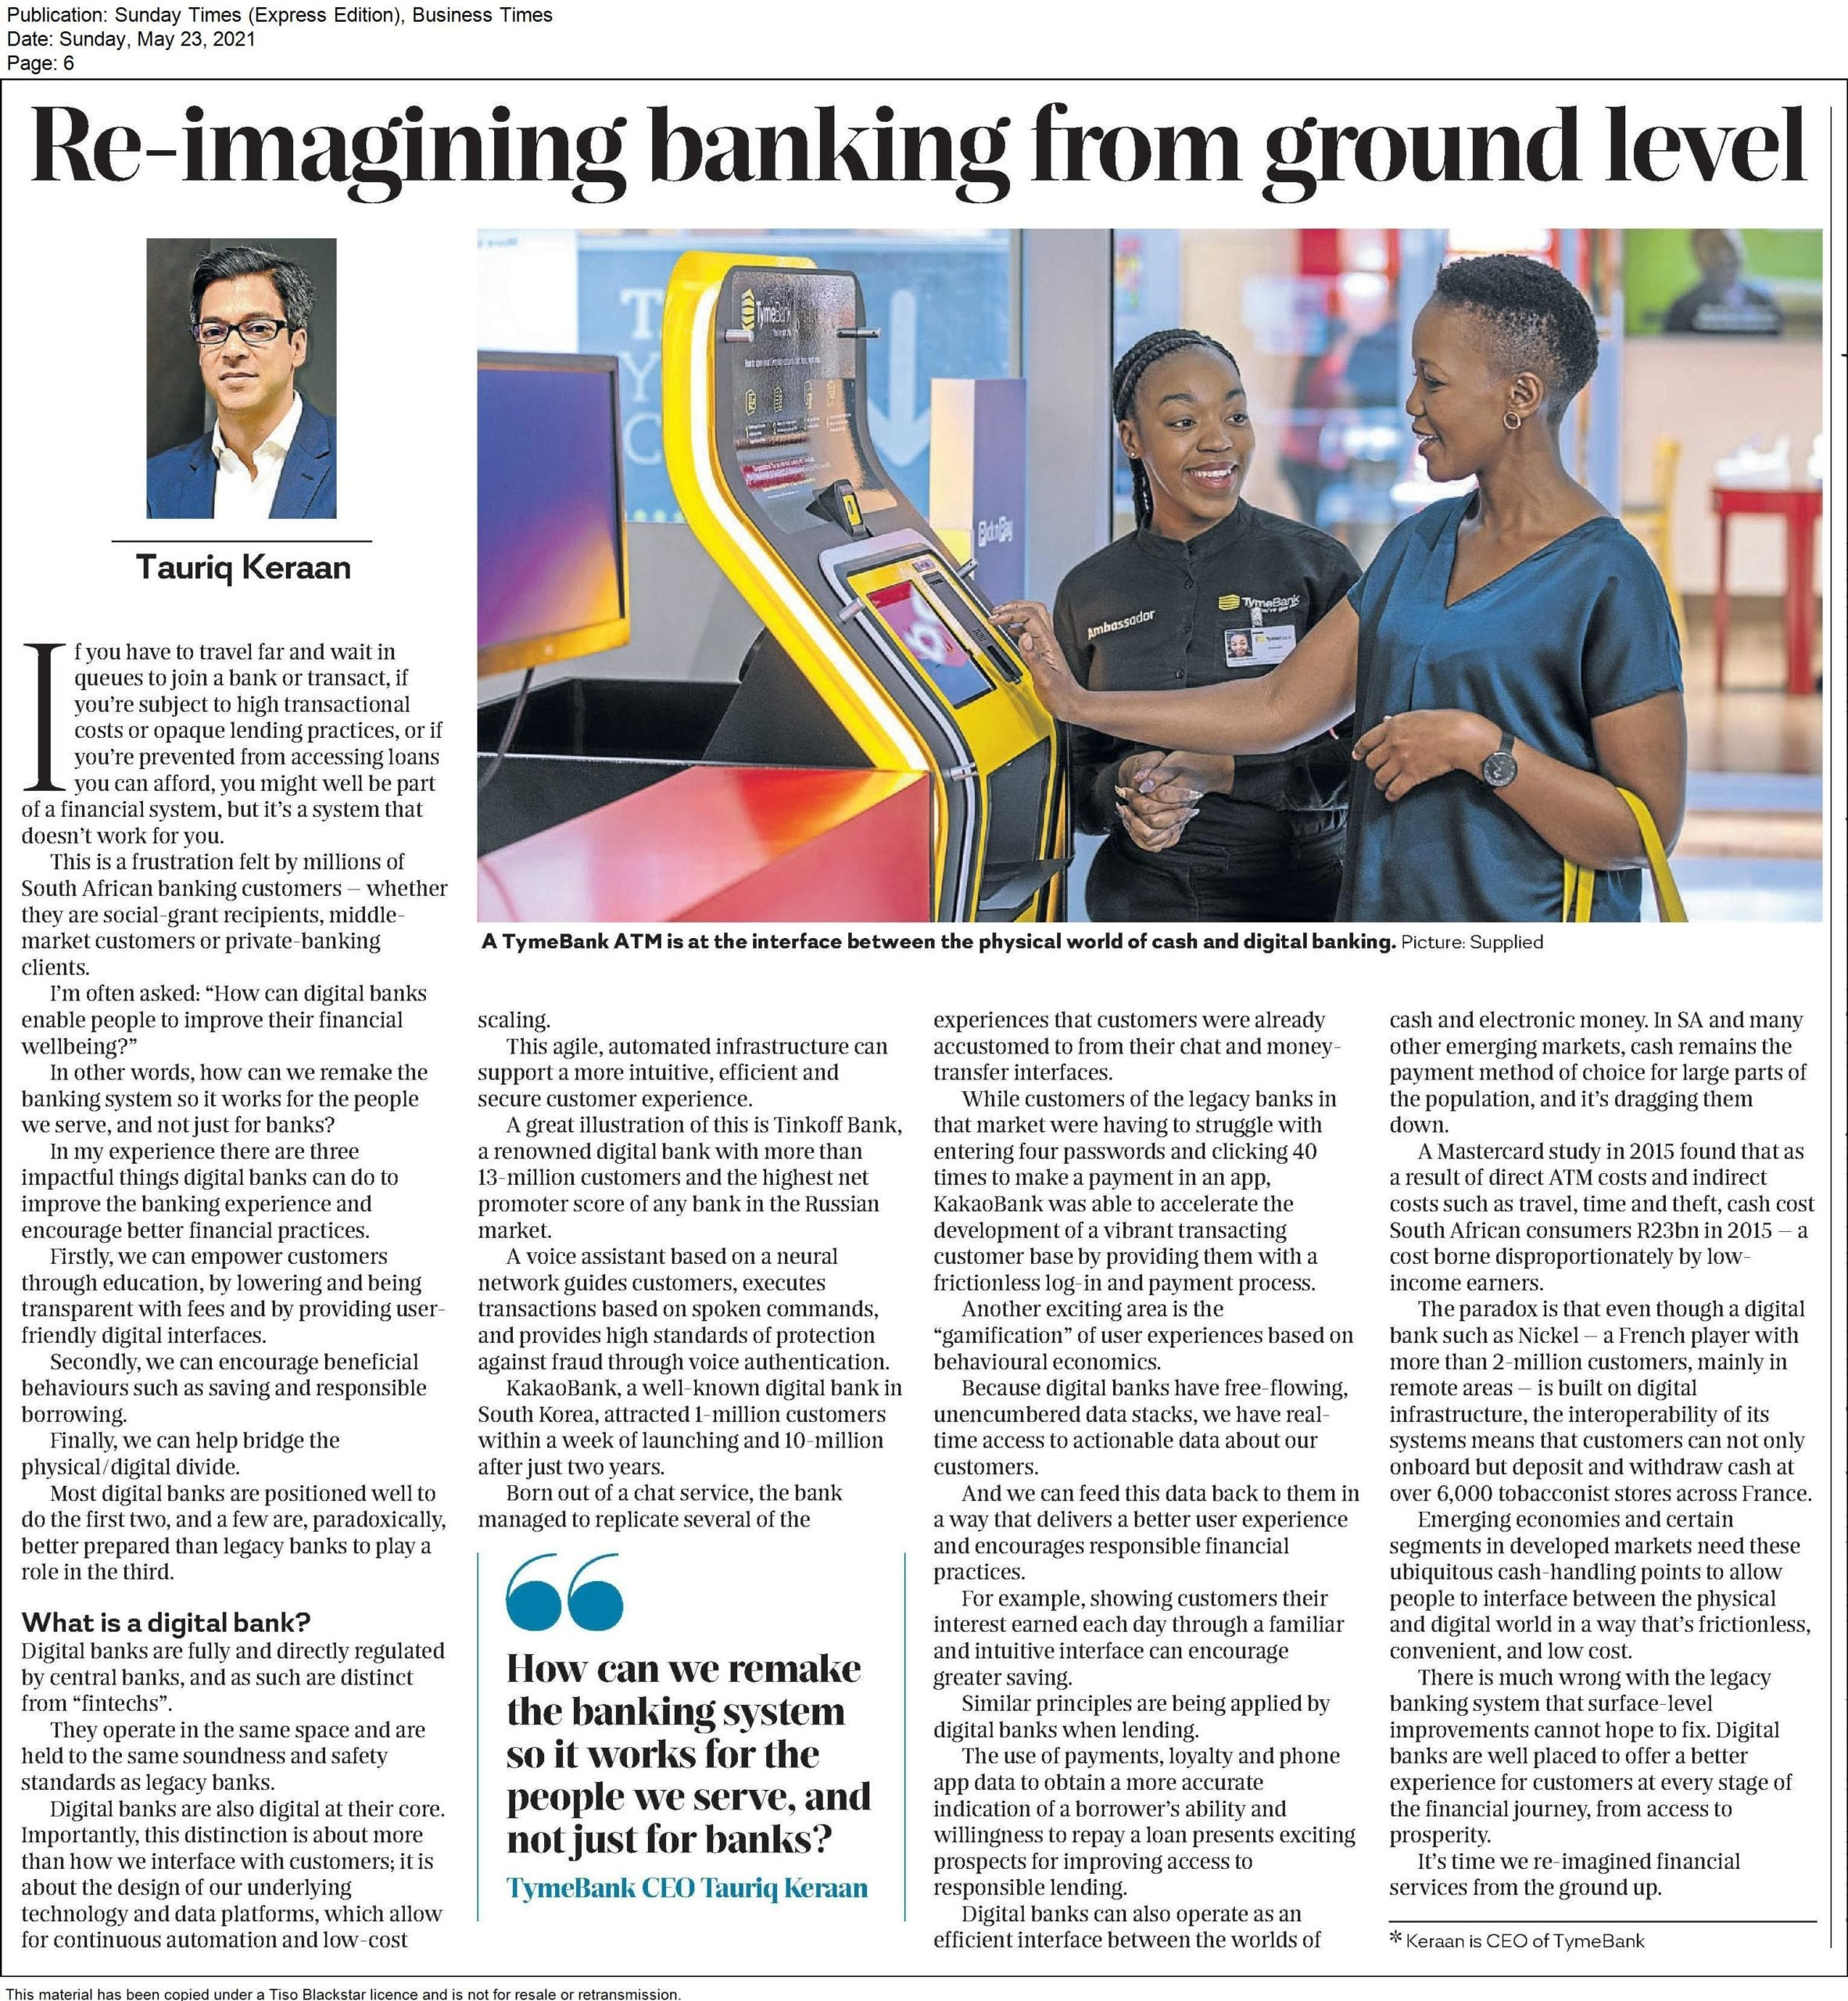 Re-imagining banking from ground level